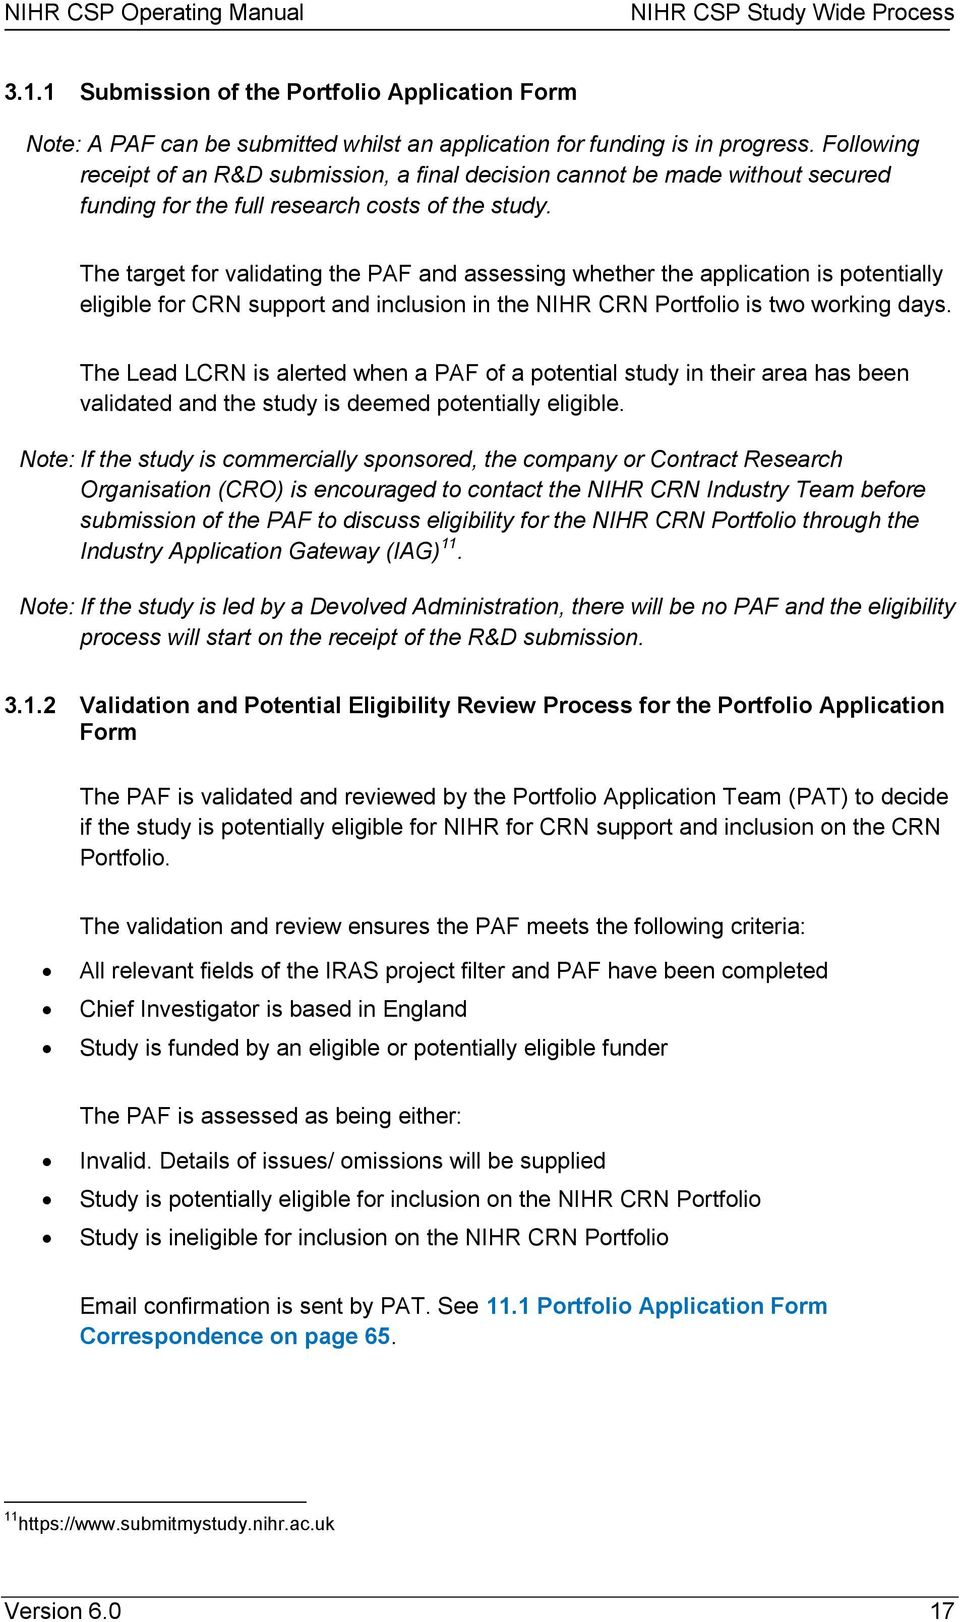 The target for validating the PAF and assessing whether the application is potentially eligible for CRN support and inclusion in the NIHR CRN Portfolio is two working days.